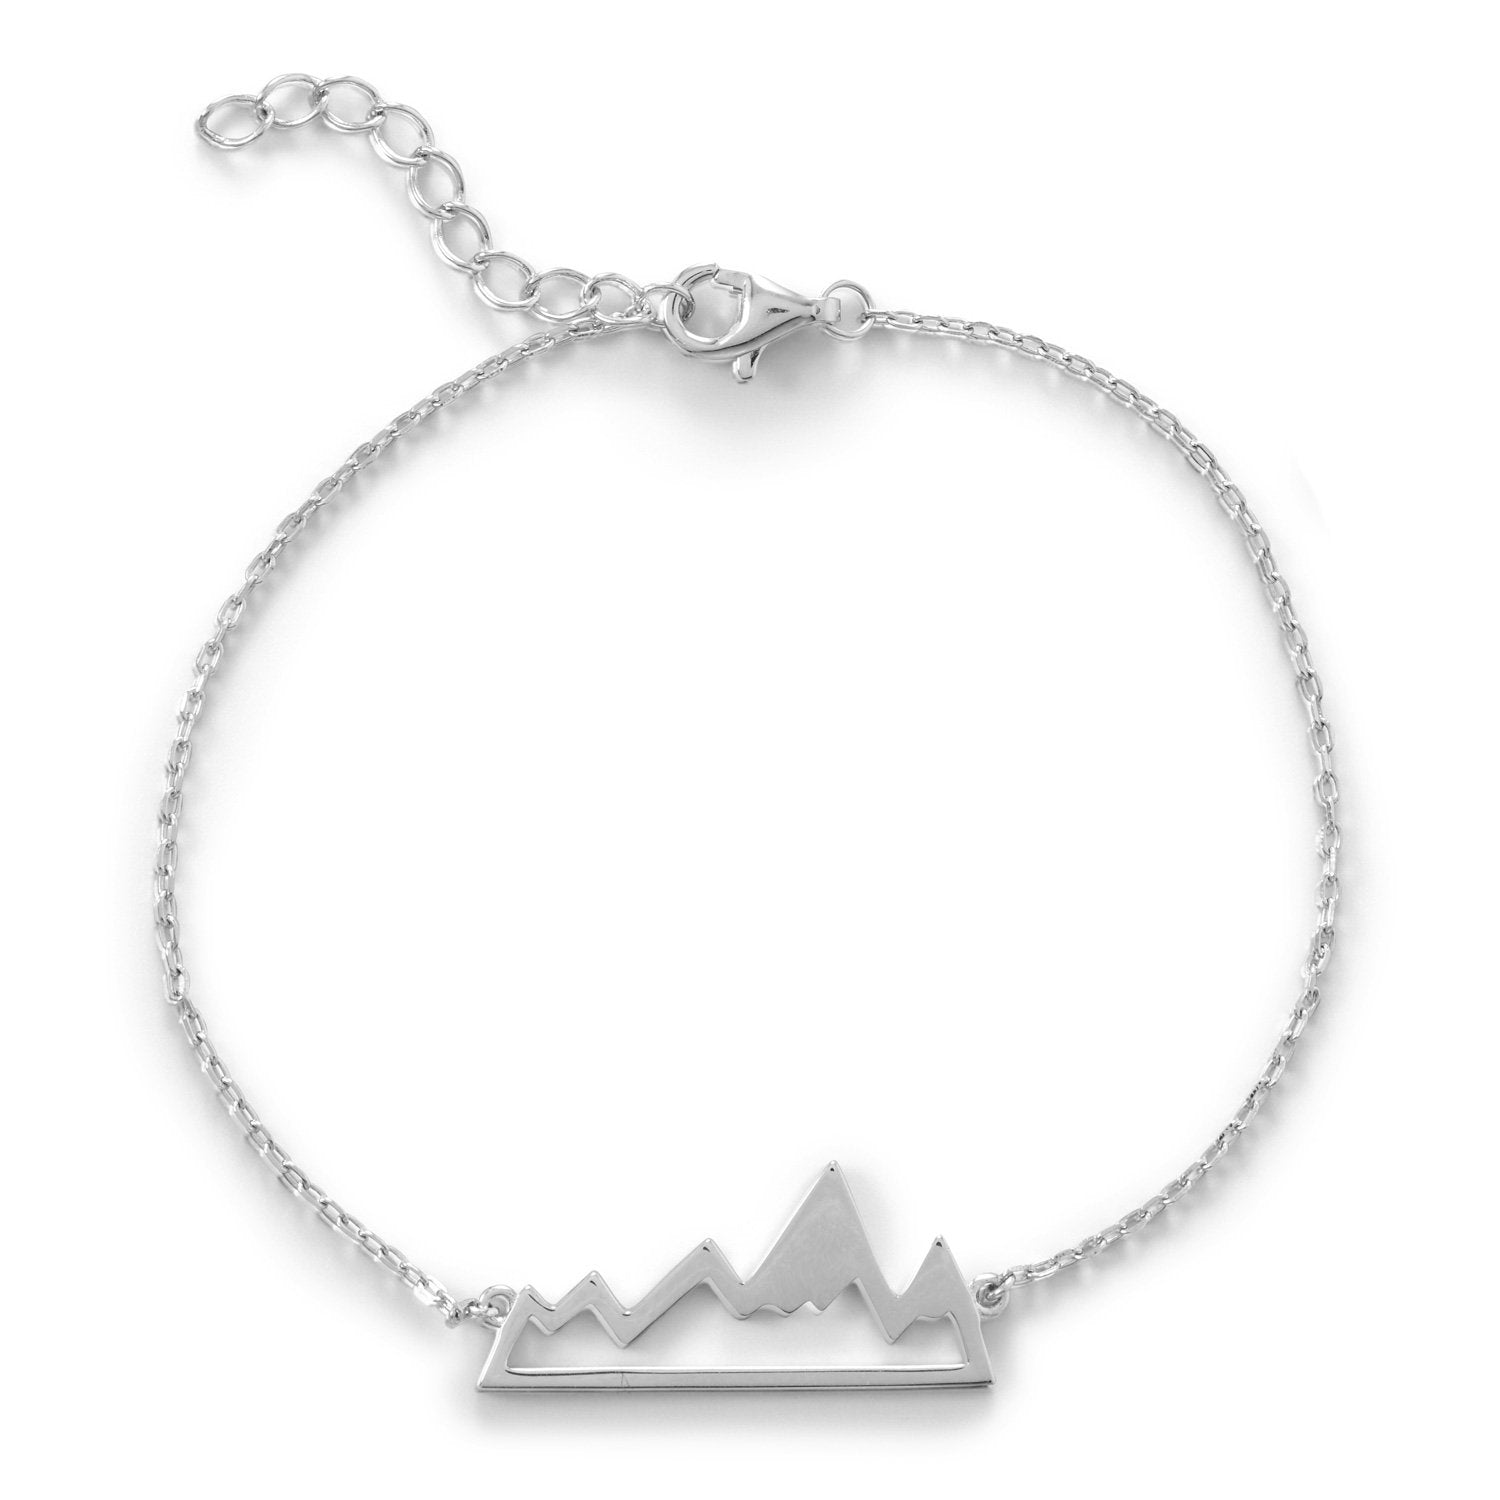 925 Sterling Silver Rhodium Plated Mountain Range Bracelet